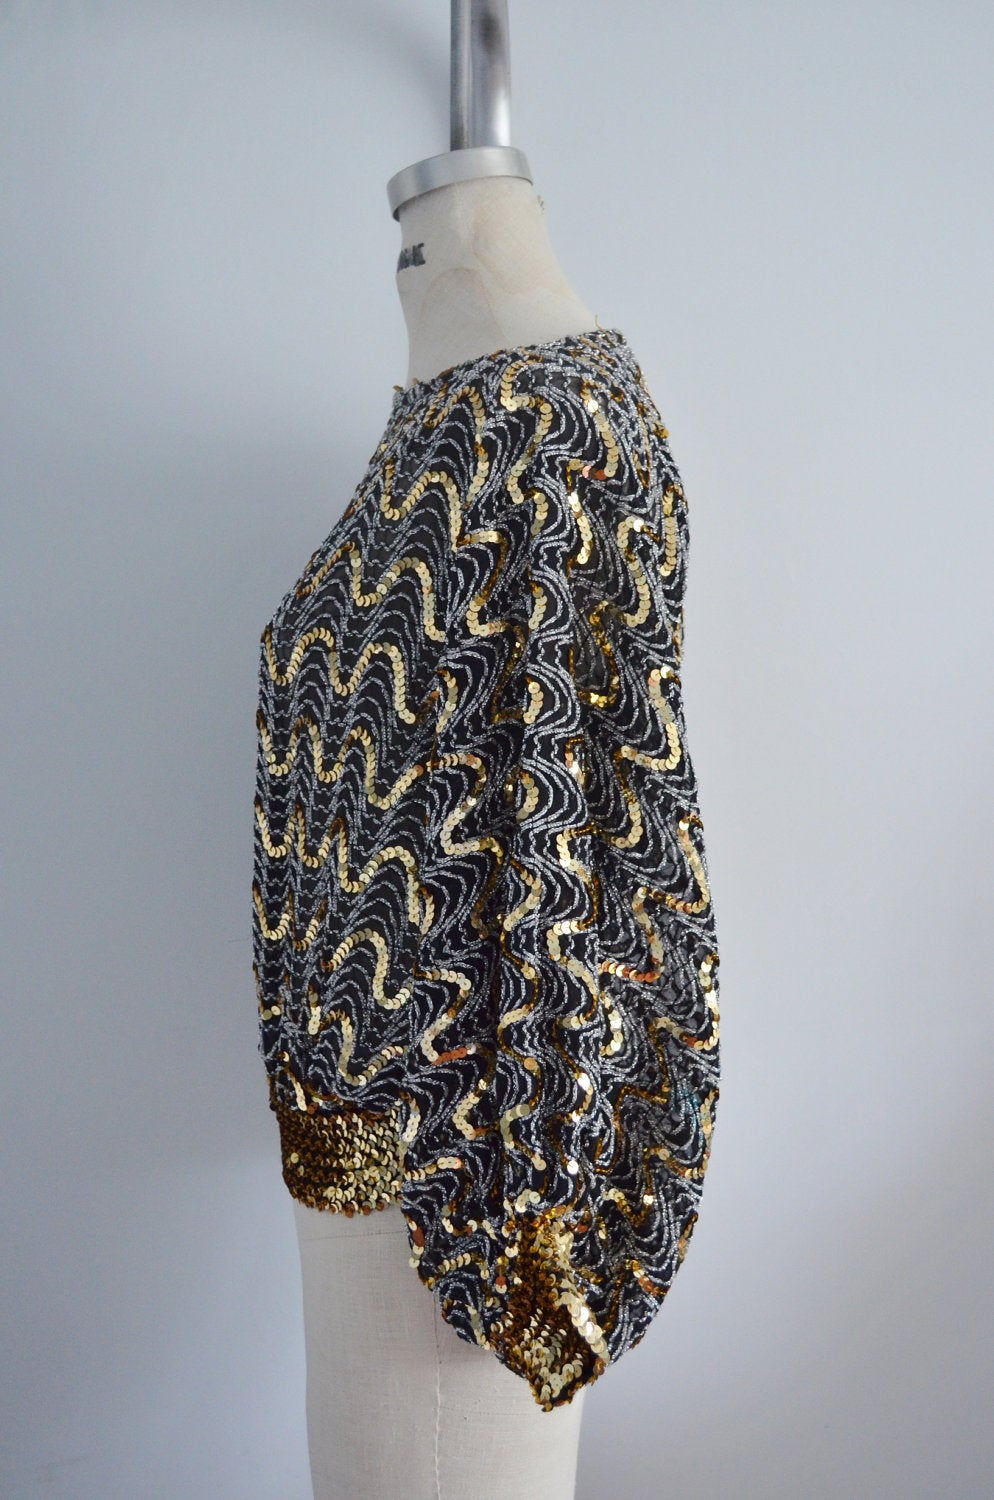 70S Glam Sequined And Beaded Batwing Disco Top Blouse Metallic Black & Gold